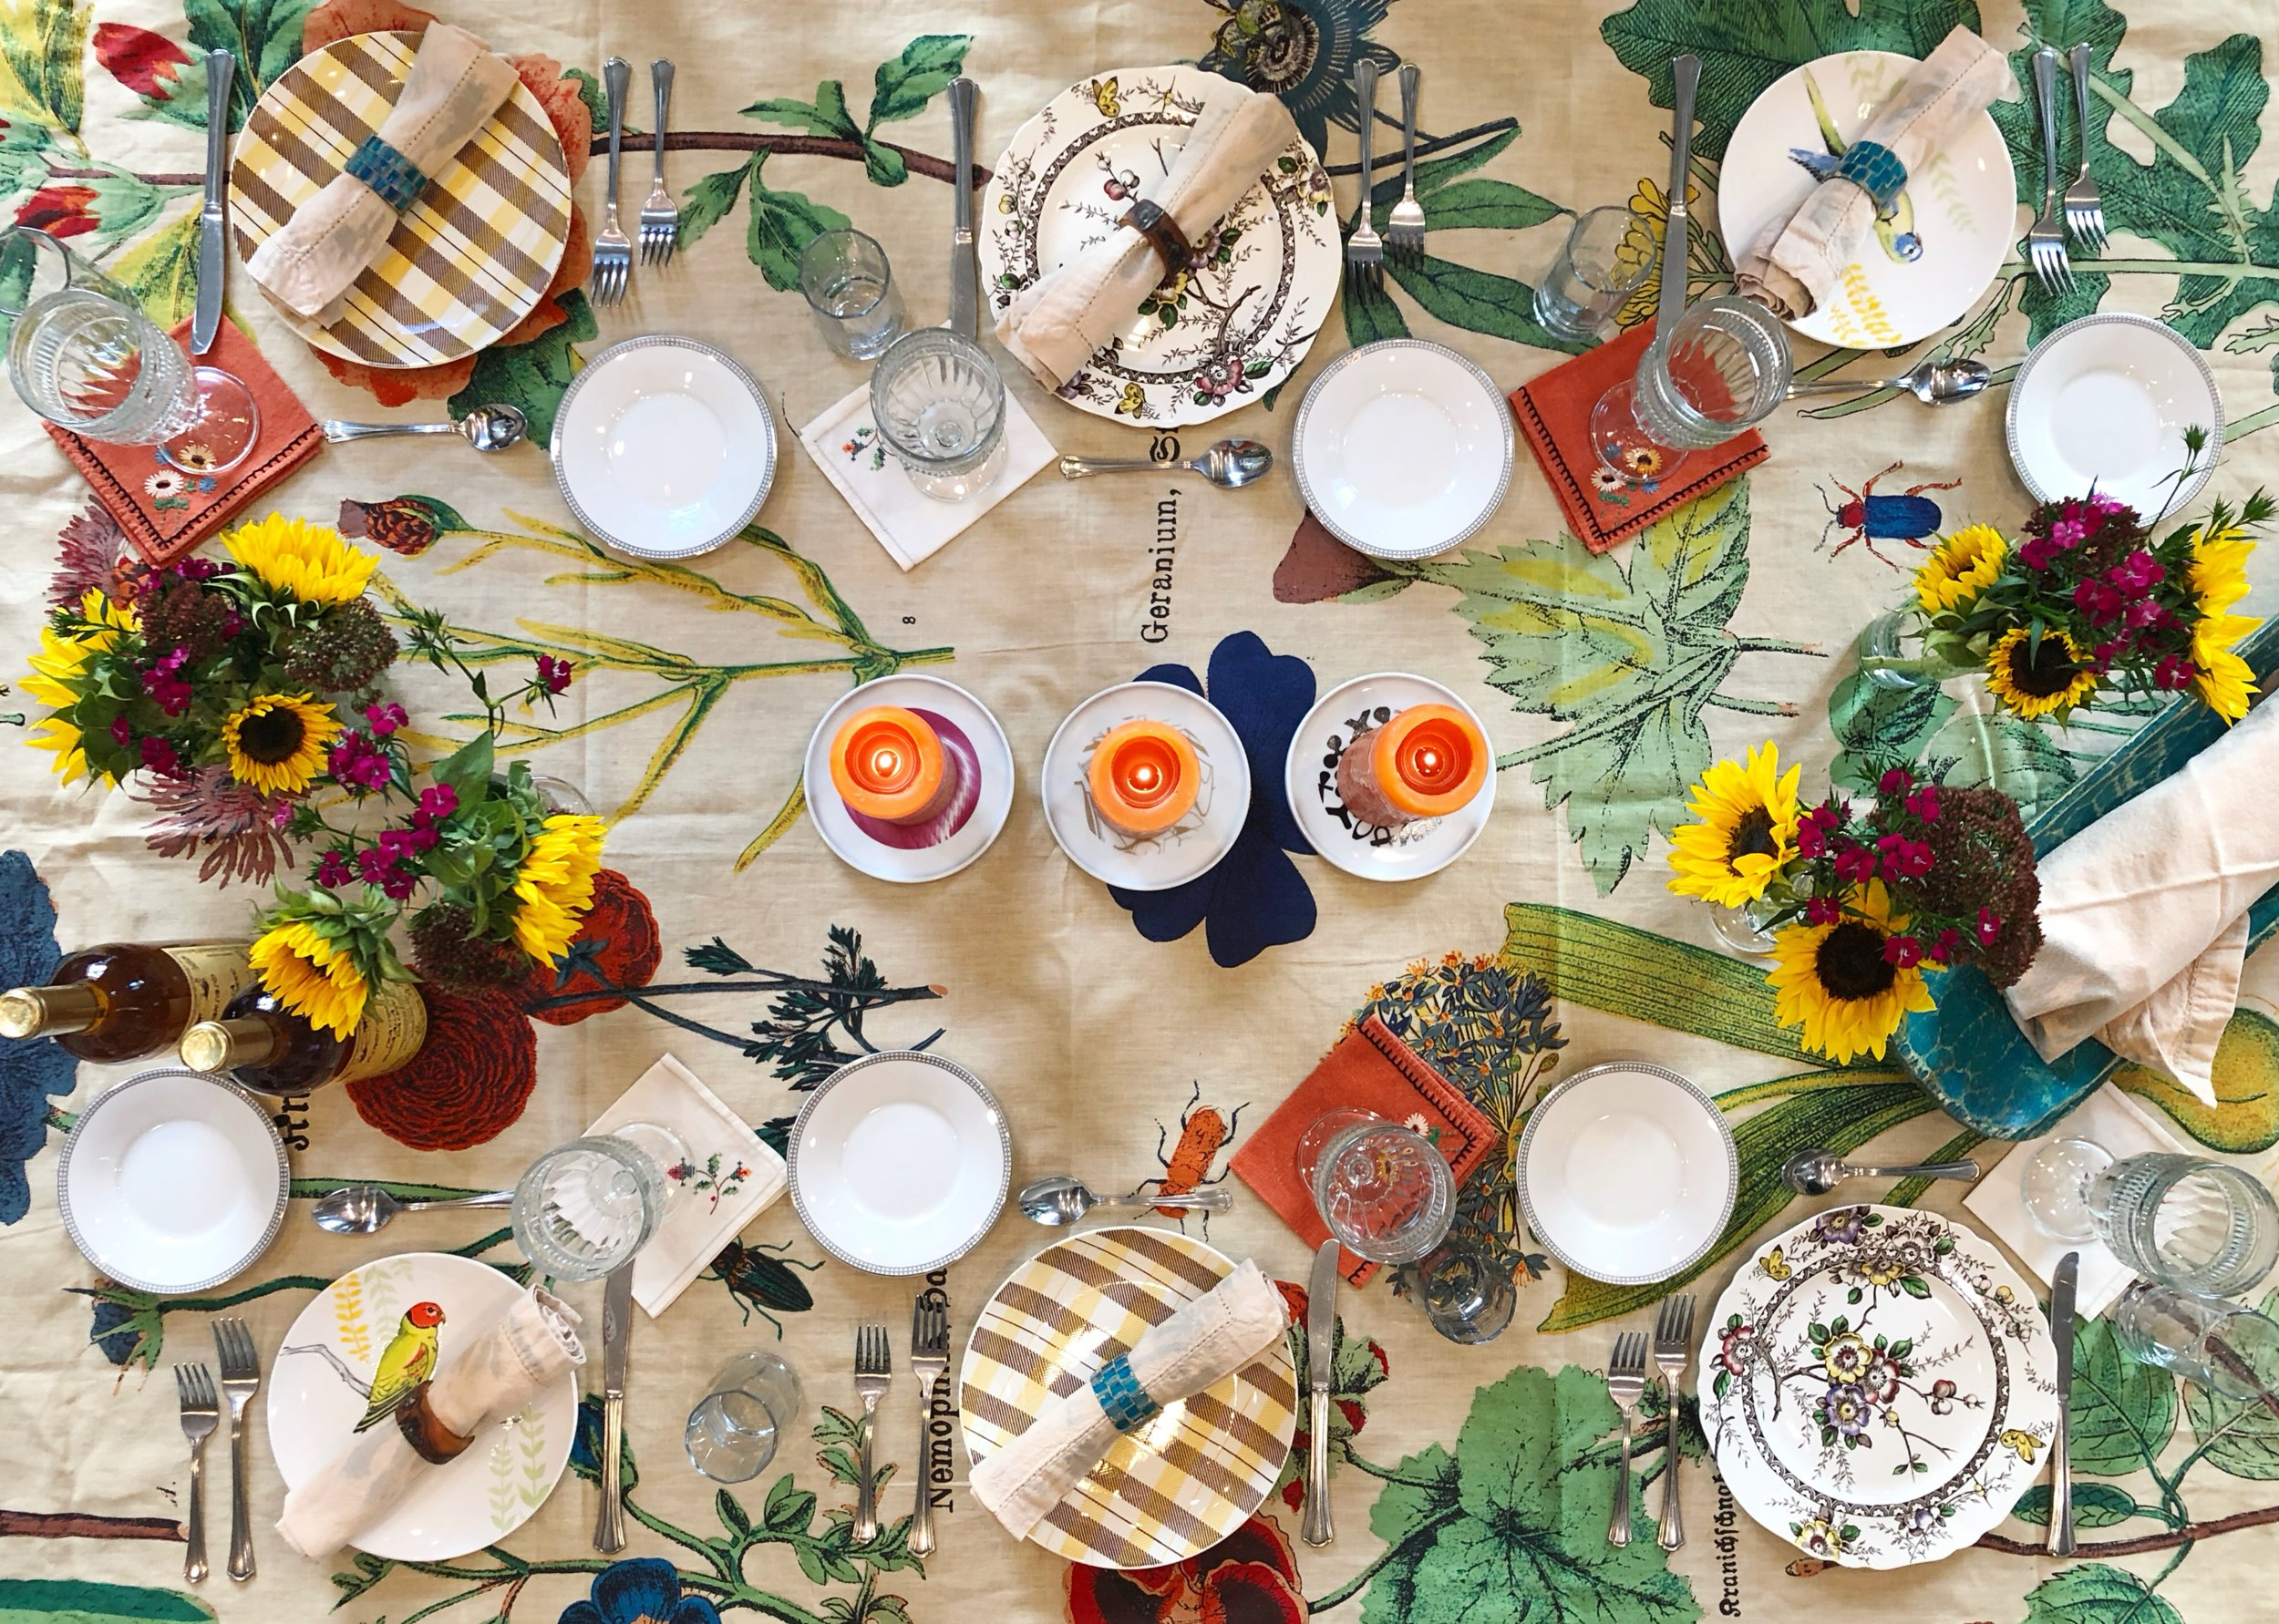 Designer how-to tips on how to set the table for a dinner or brunch party. Don't worry if you don't have enough matched dishes to go around. Mix and match the colors and patterns for a collage of dish ware. Throw a dinner party with regular casual plates and glasses. Dress up your table with a bright table cloth and add flowers for the occasion.